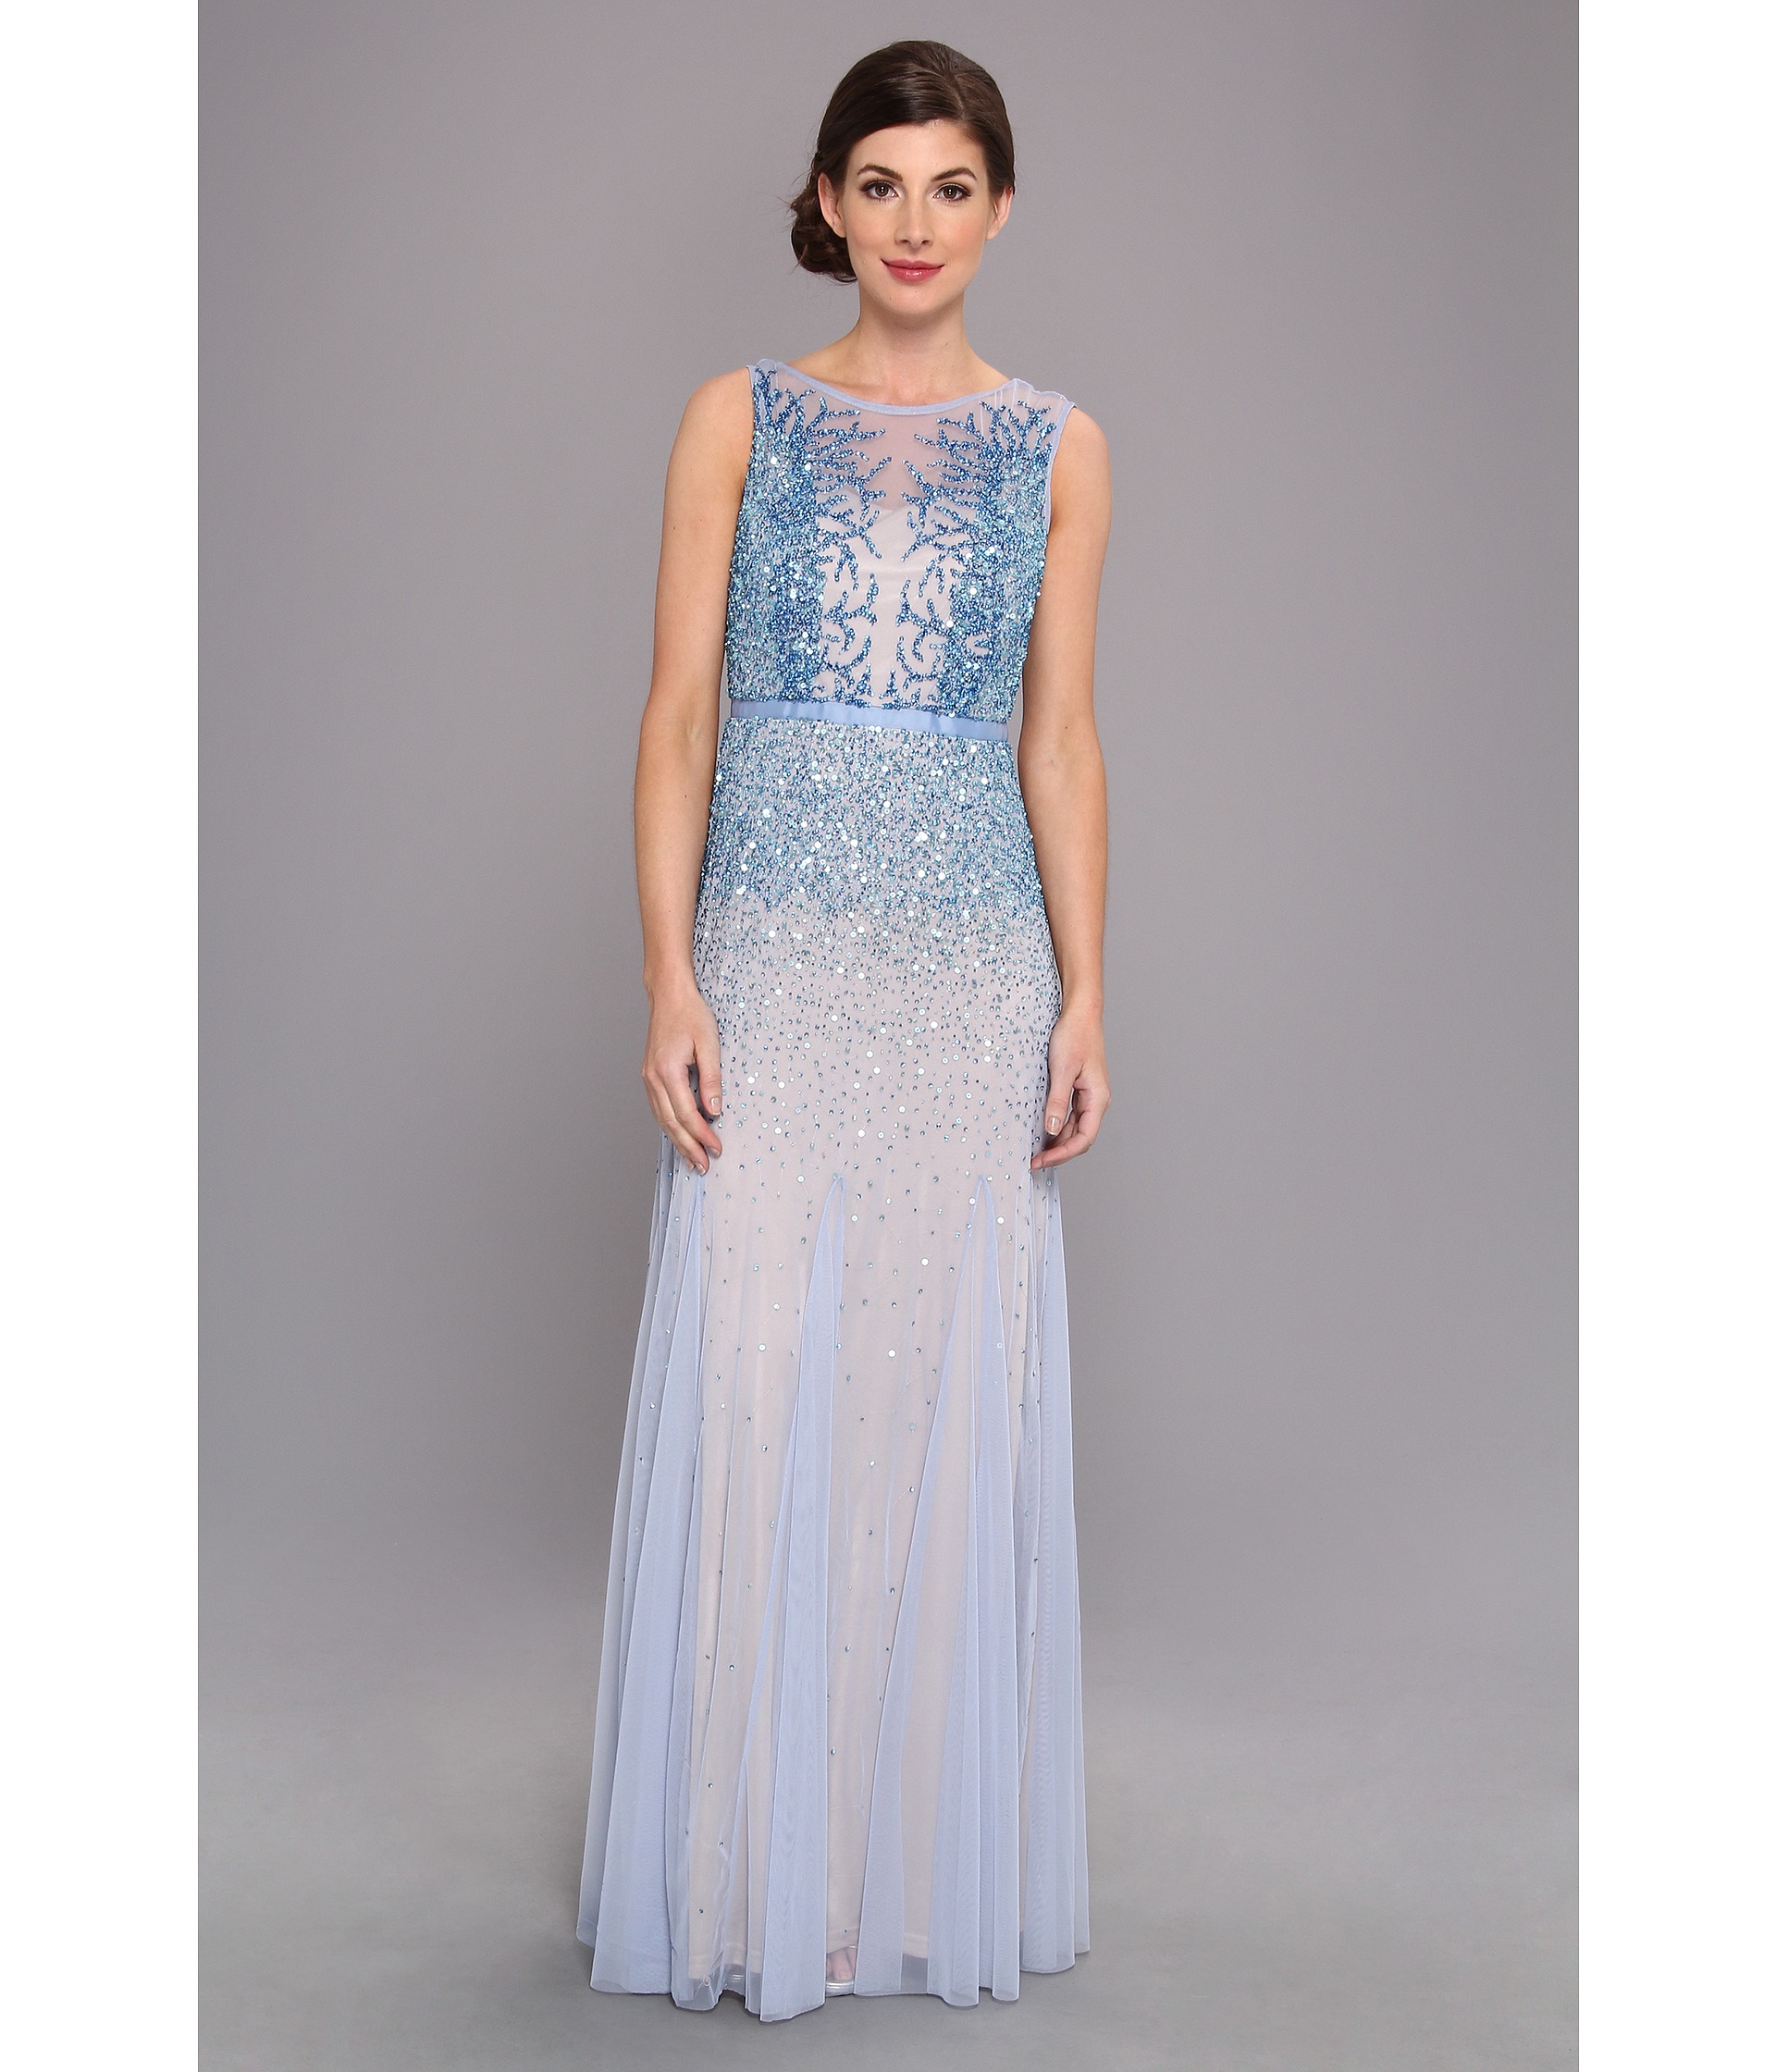 Lyst  Adrianna Papell Beaded Illusion Gown Prom in Blue